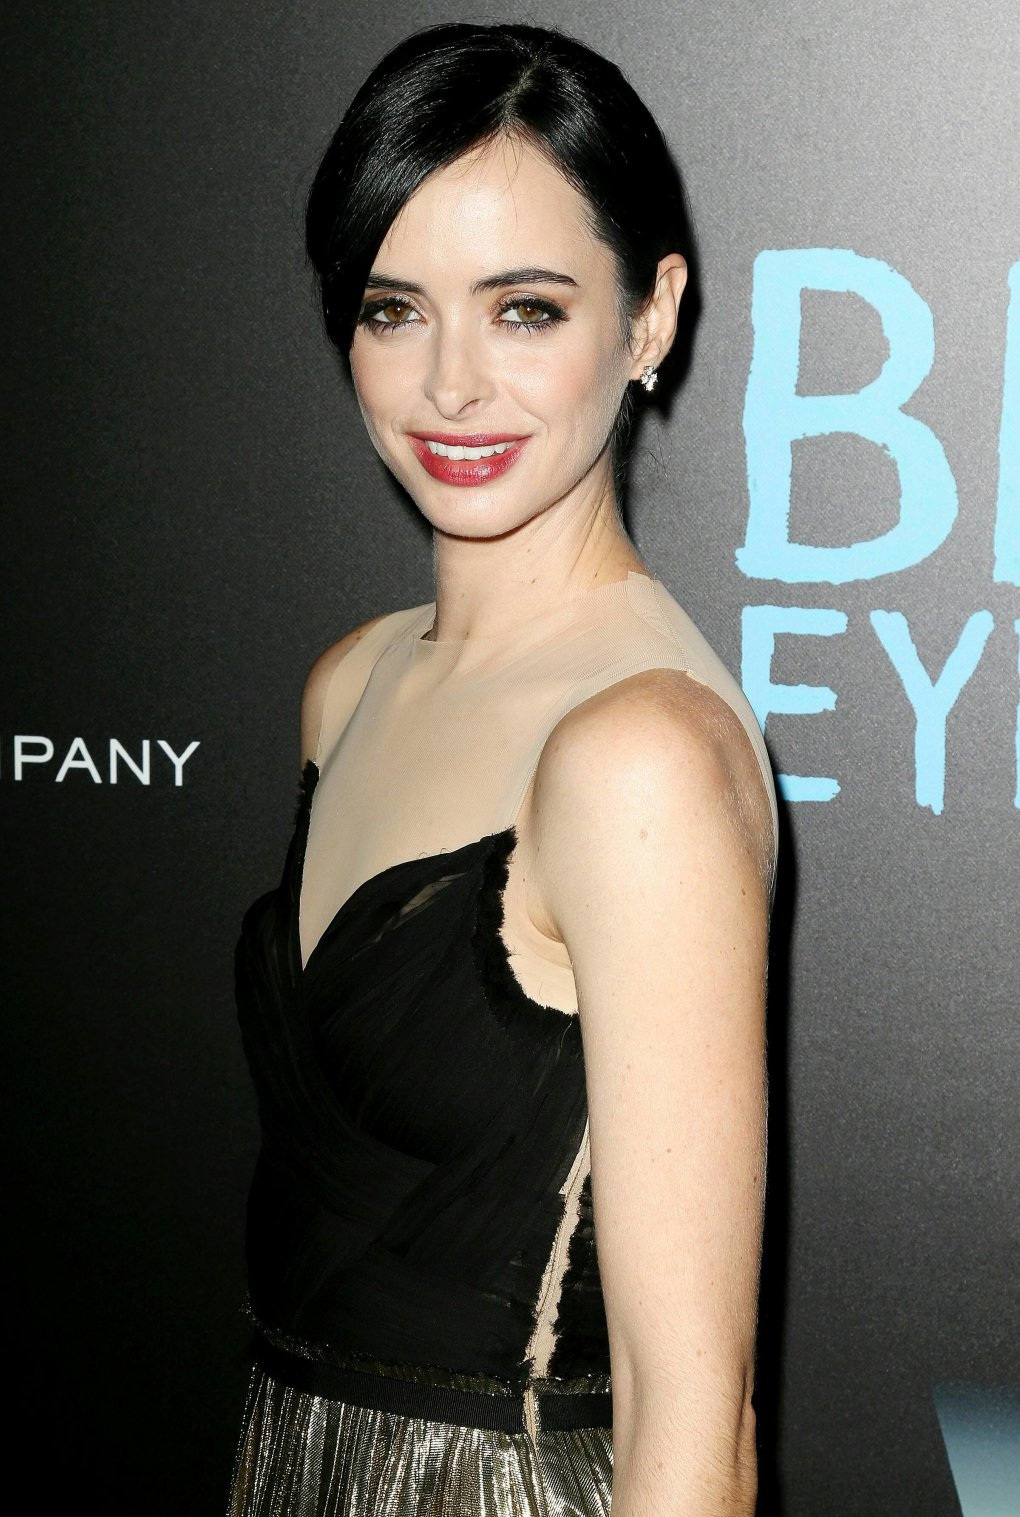 The Hottest Krysten Ritter Photos - Barnorama